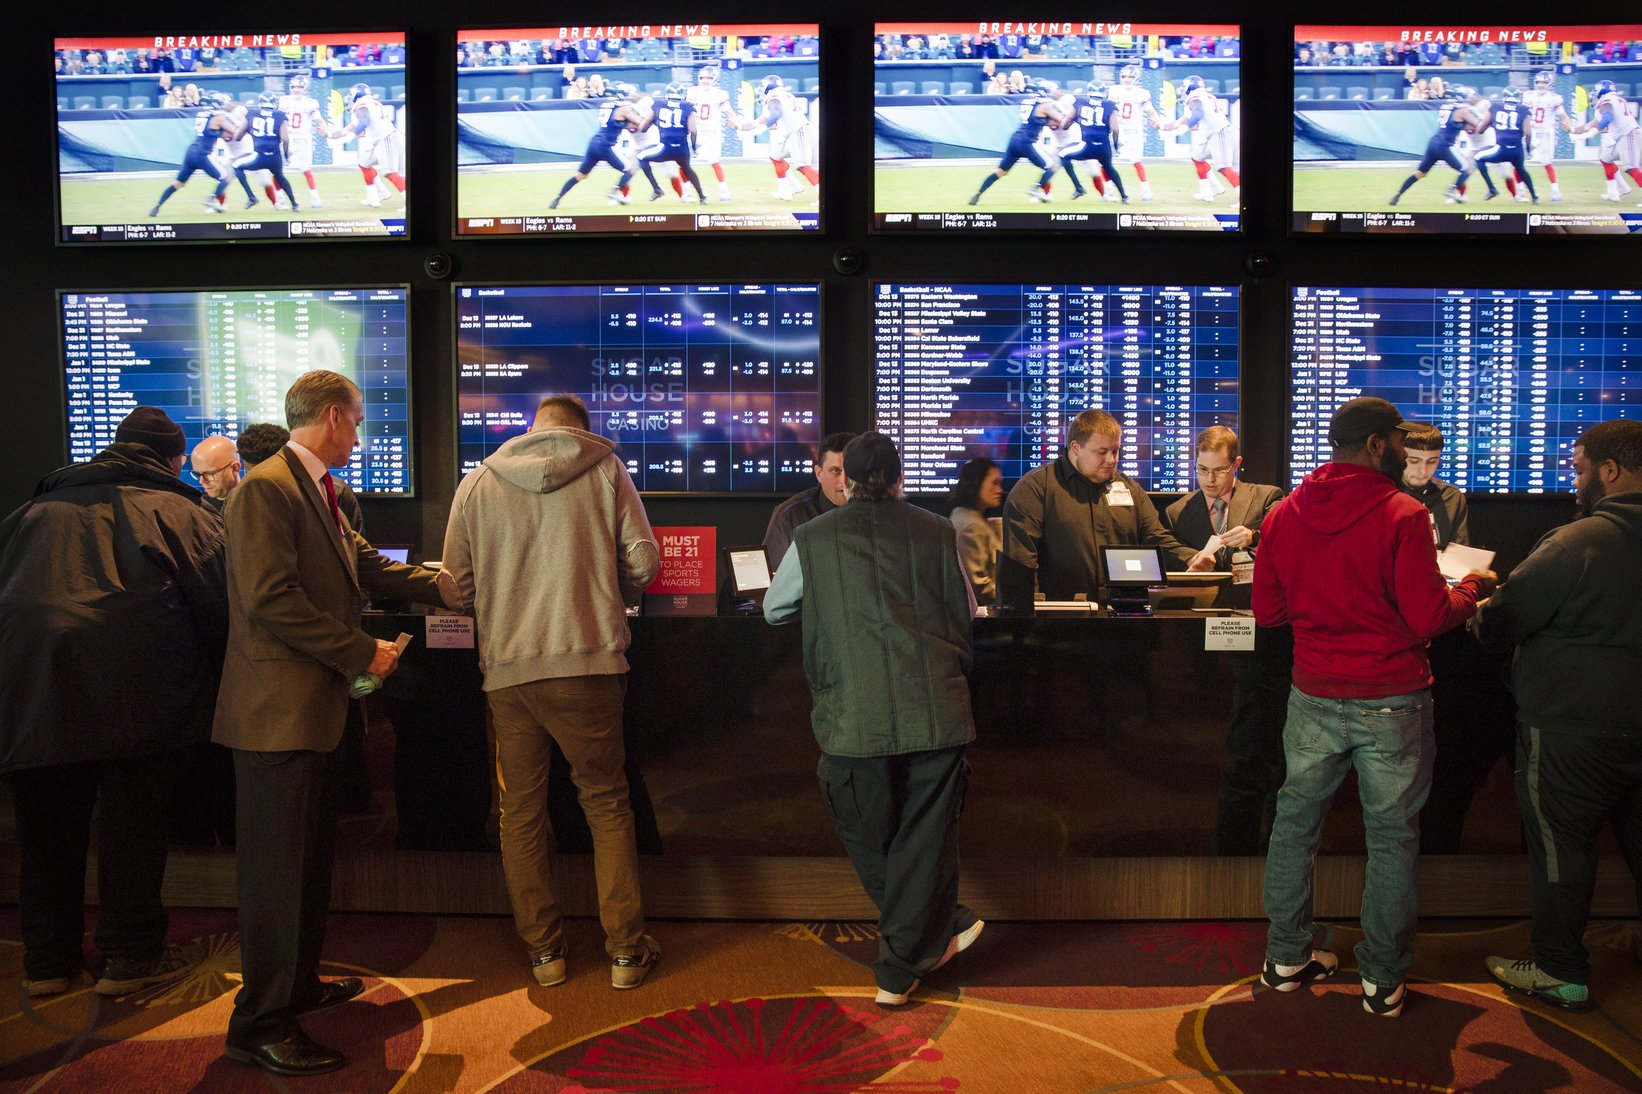 Feds eye move to regulate legal sports betting